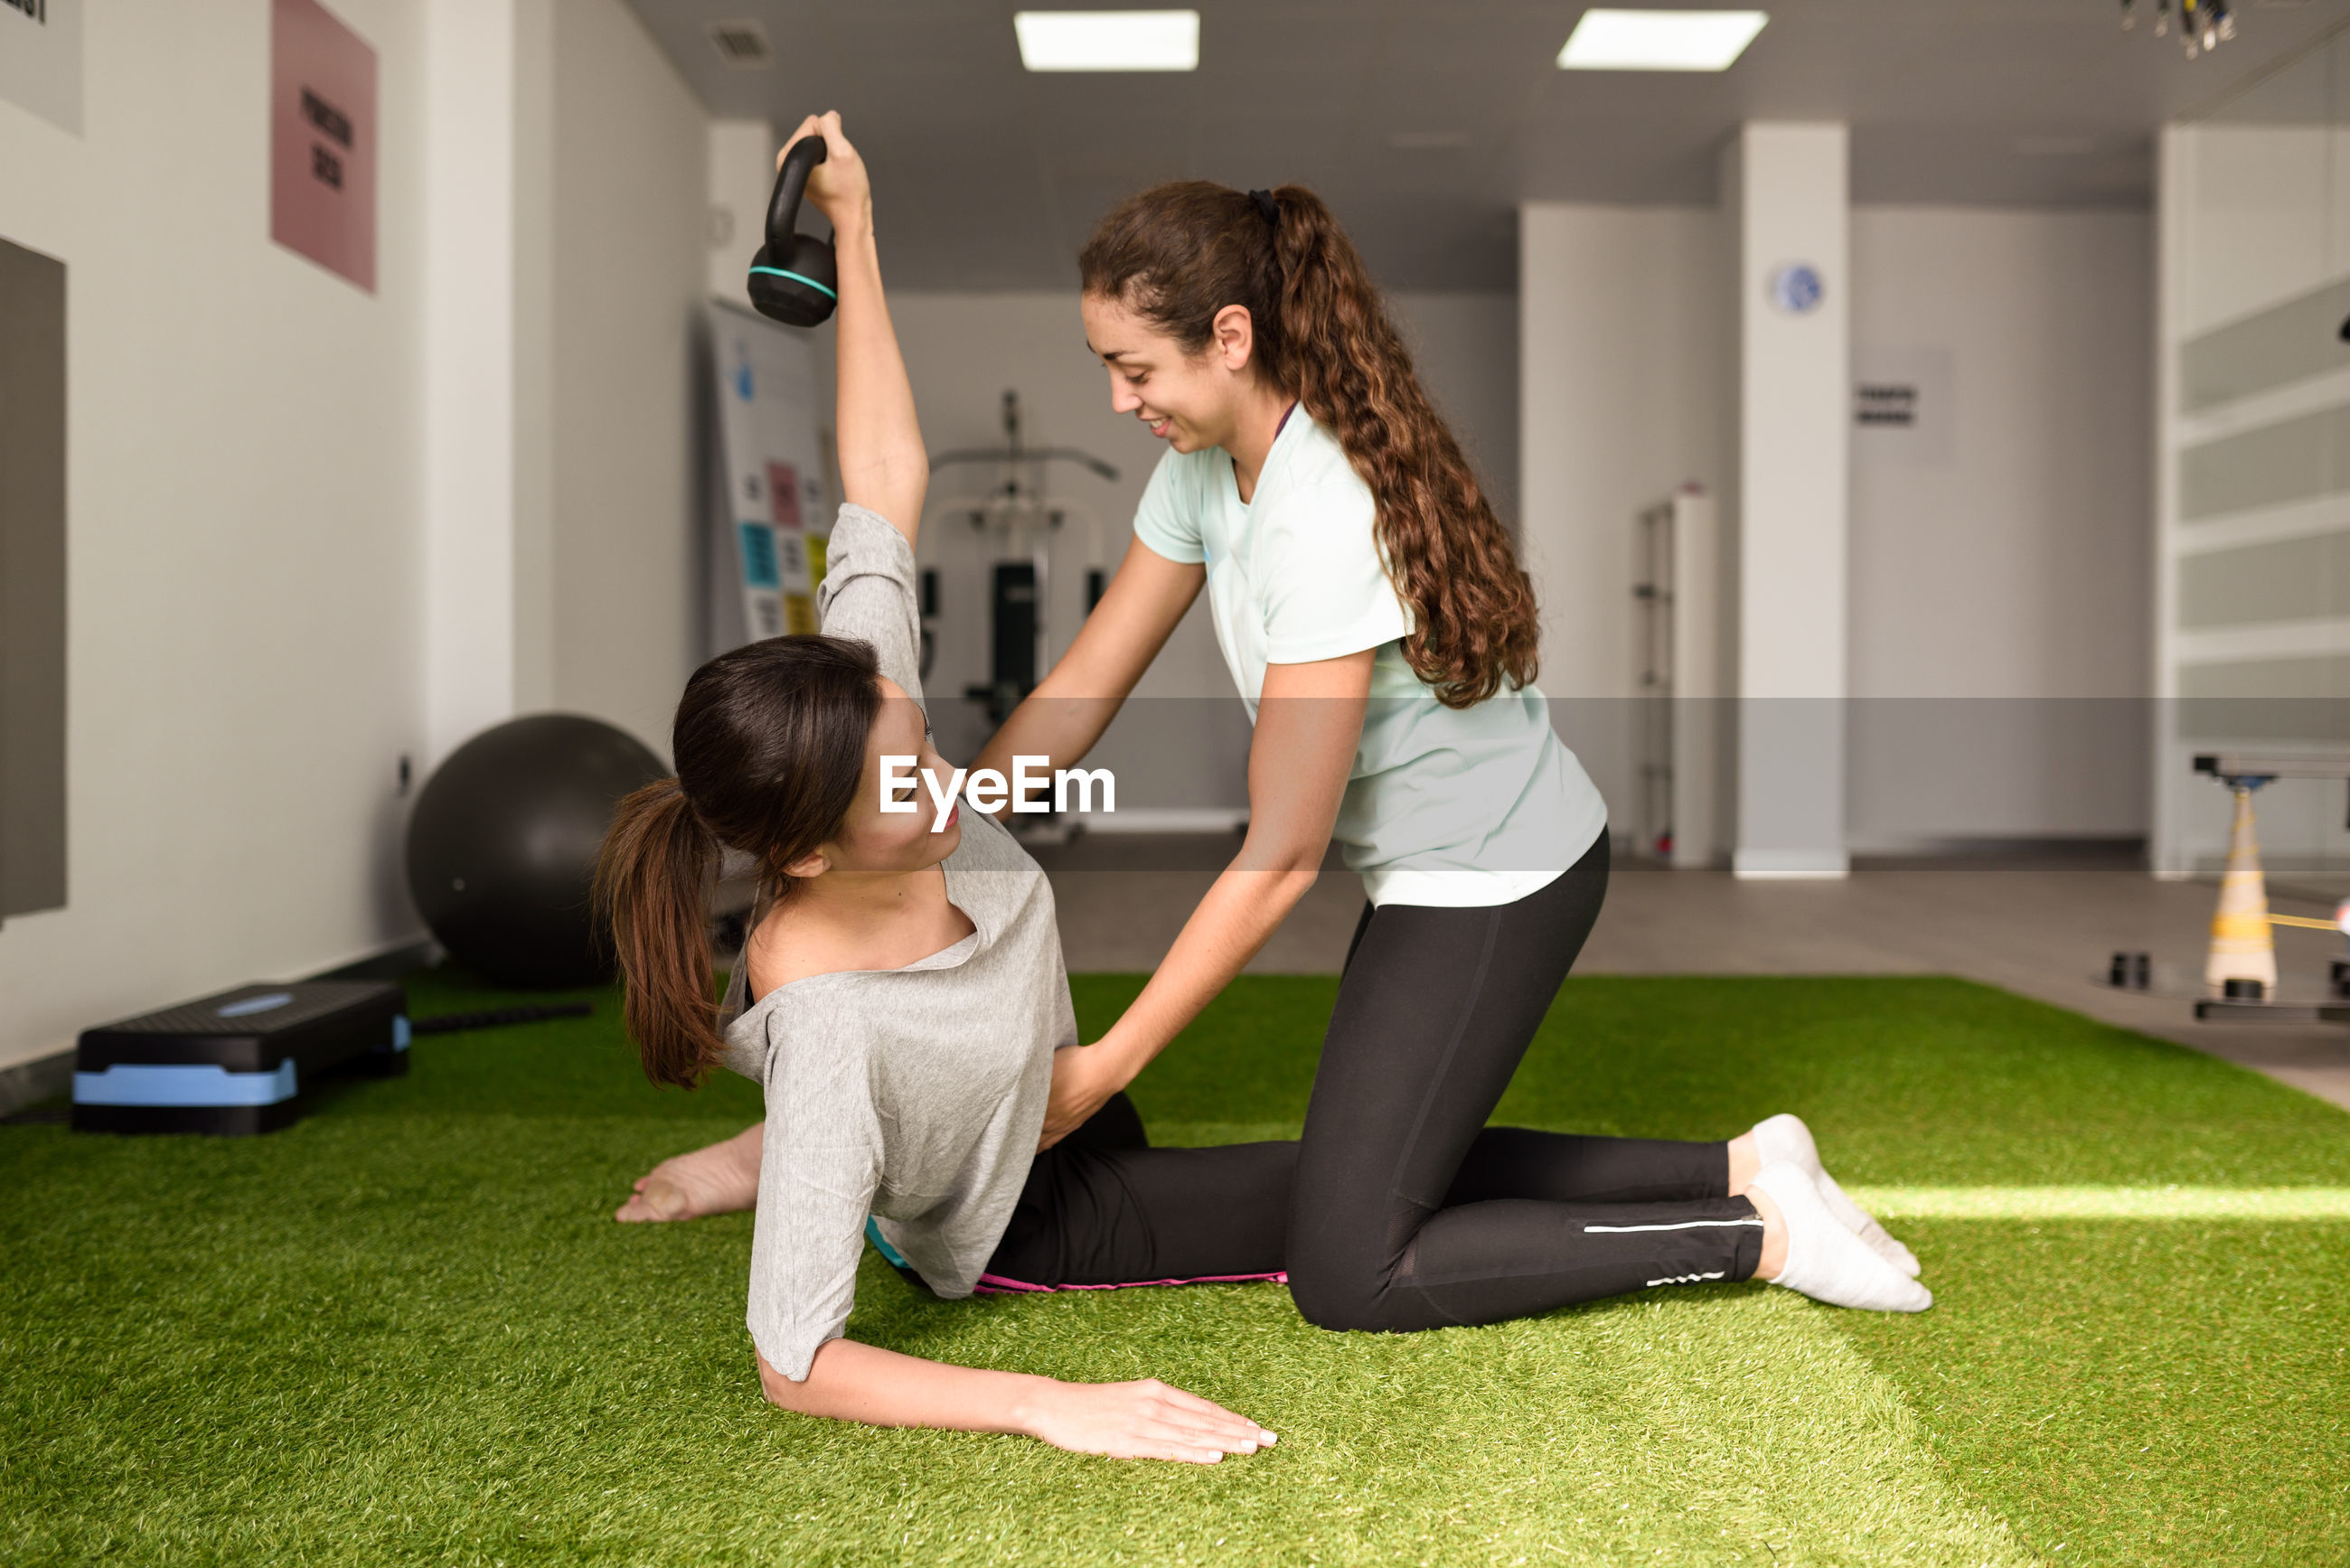 Instructor assisting woman exercising at gym